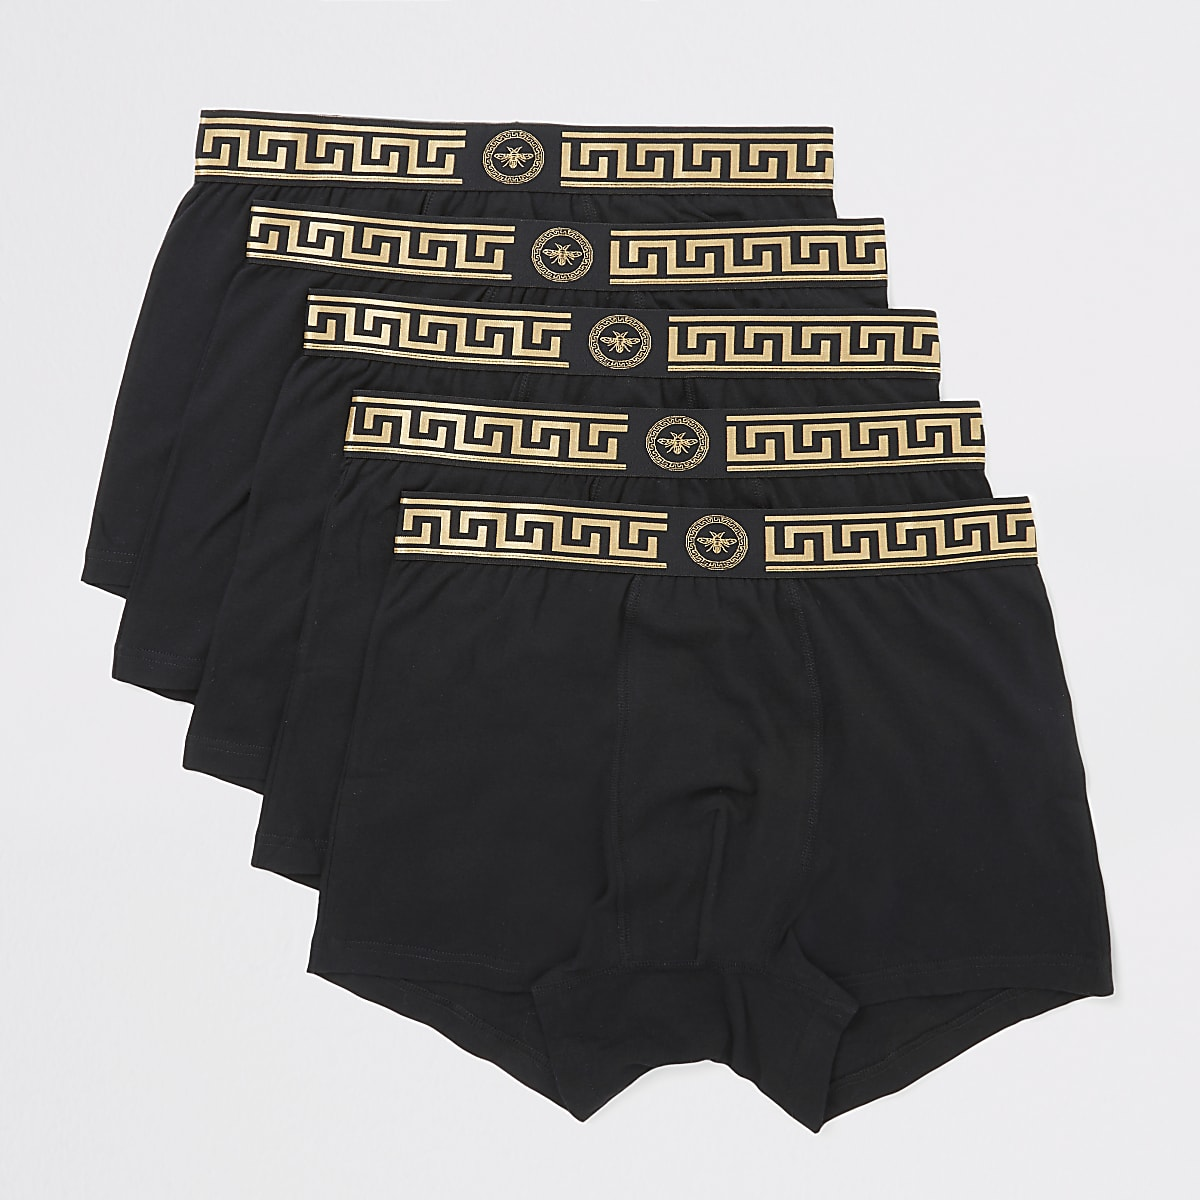 Black gold print trim trunks 5 pack